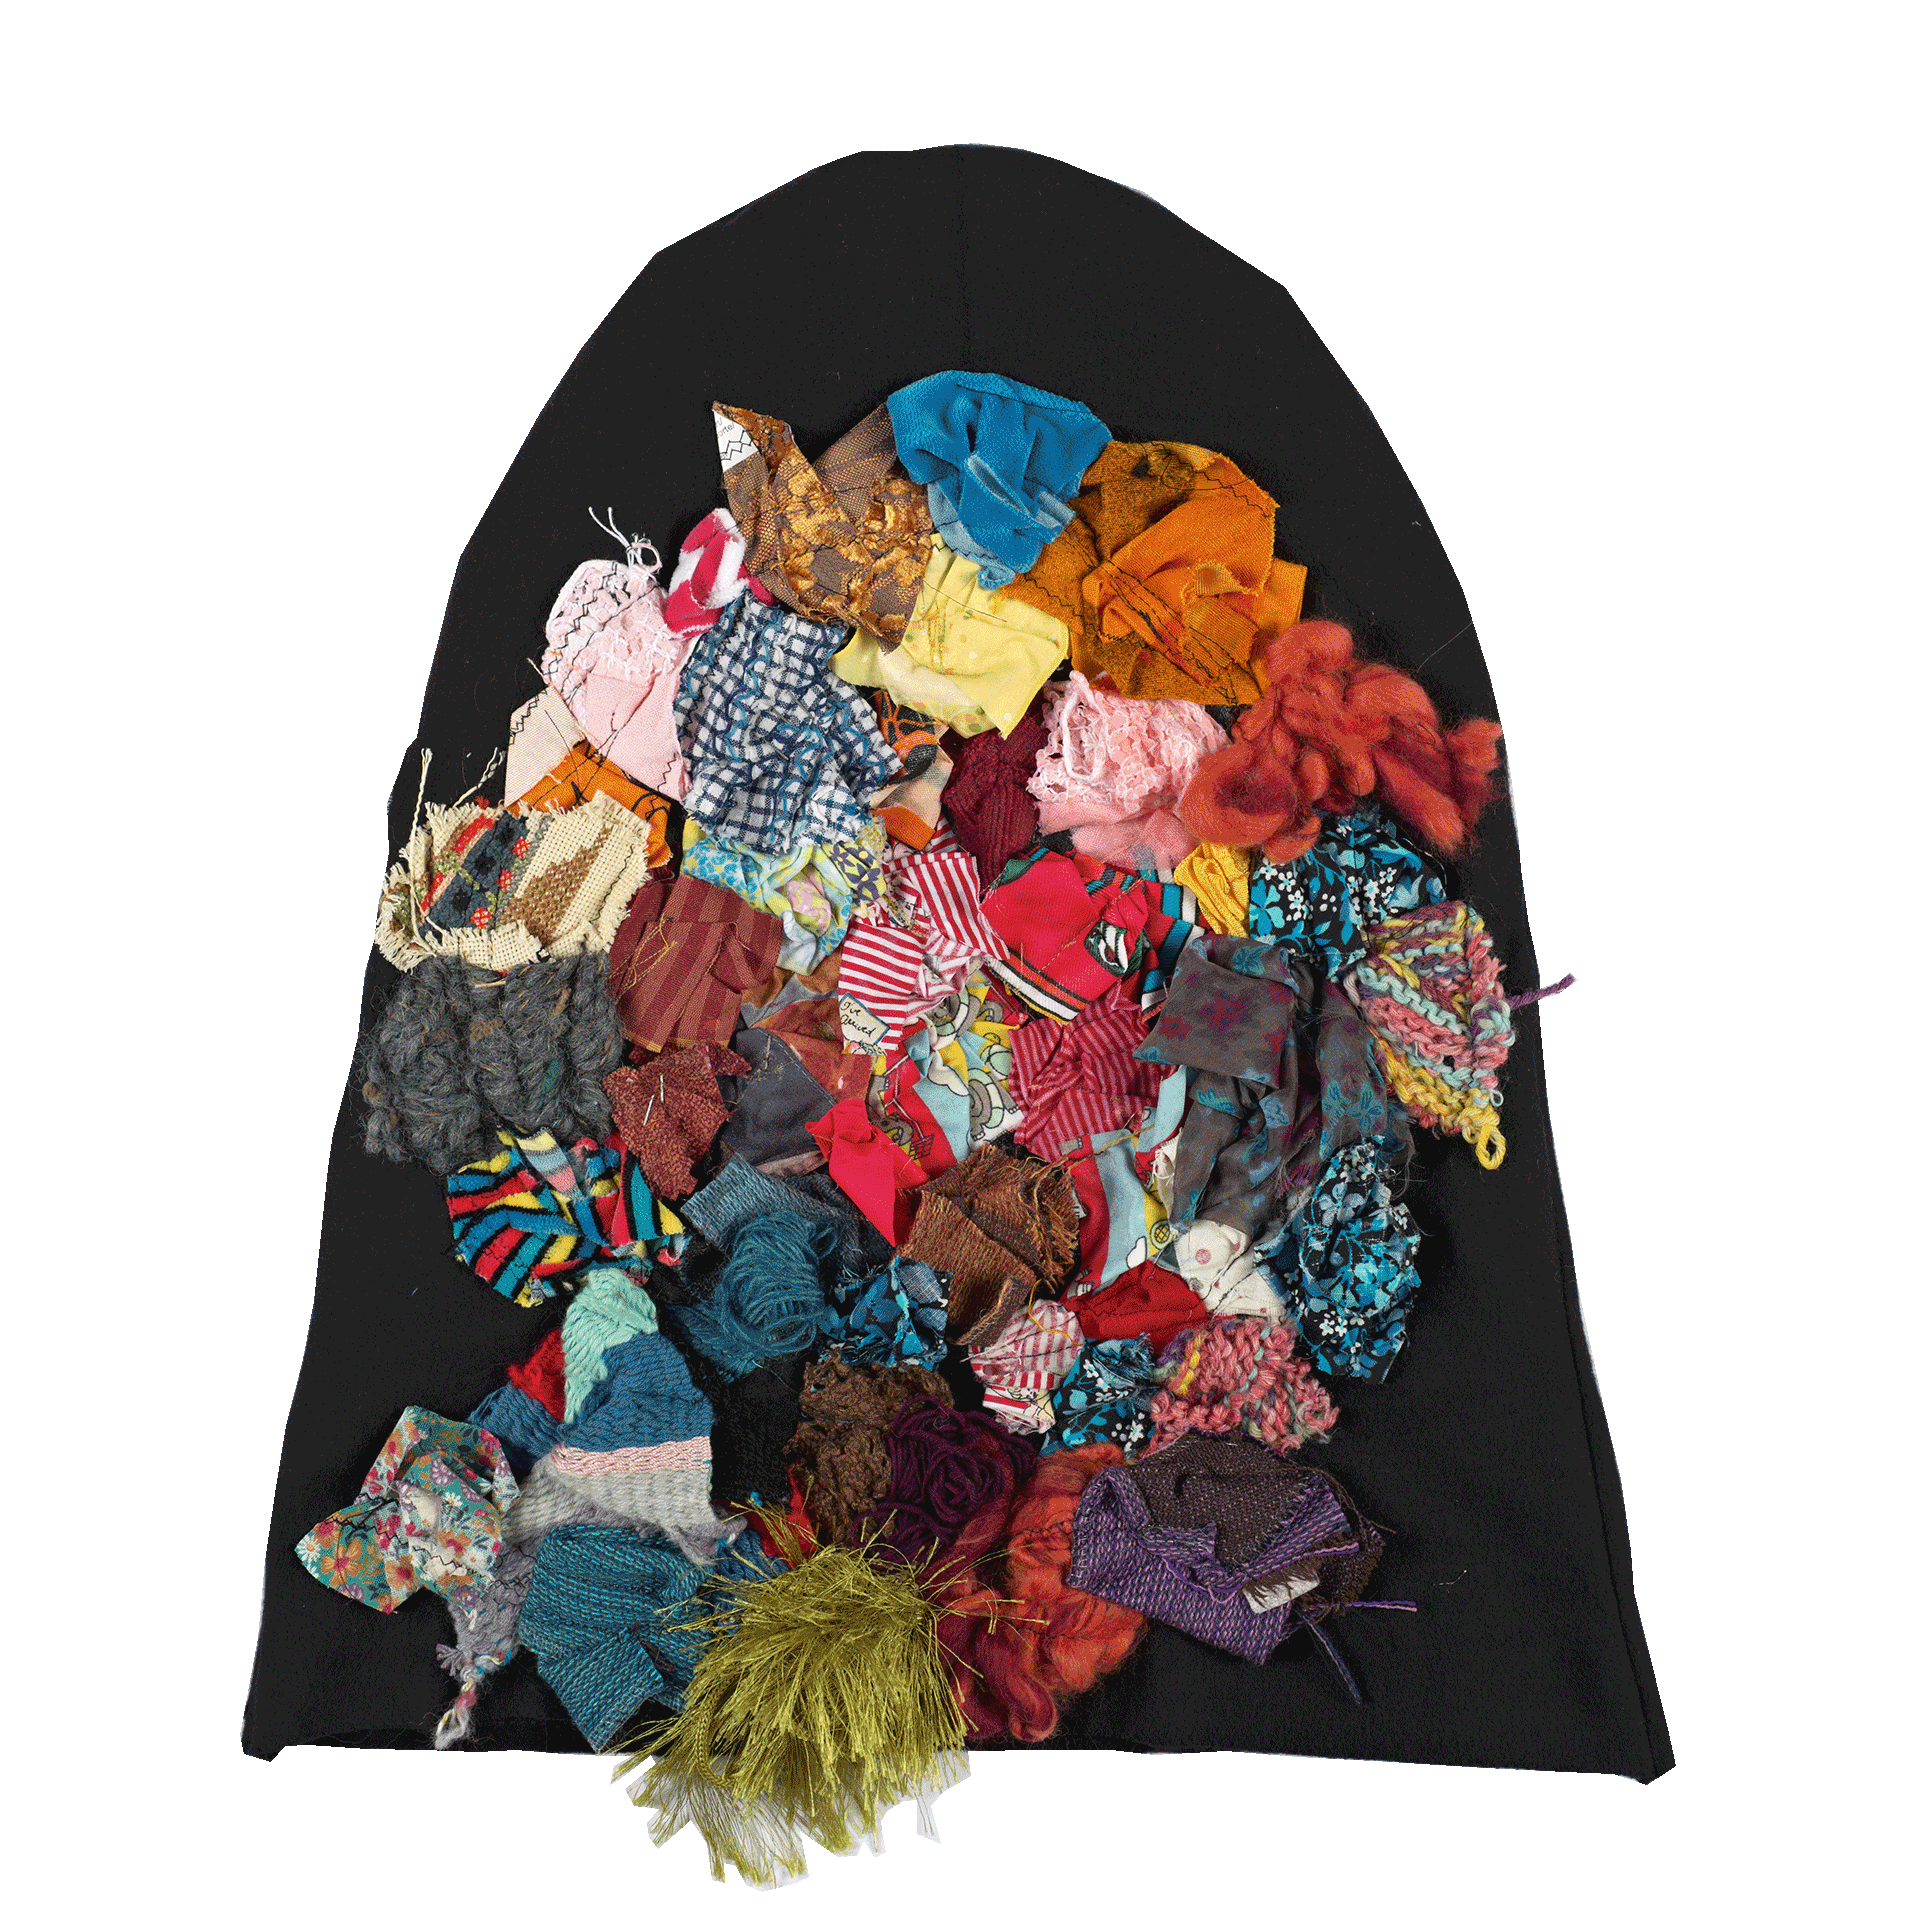 Awesome Burka Schnittmuster Mold - Decke Stricken Muster ...